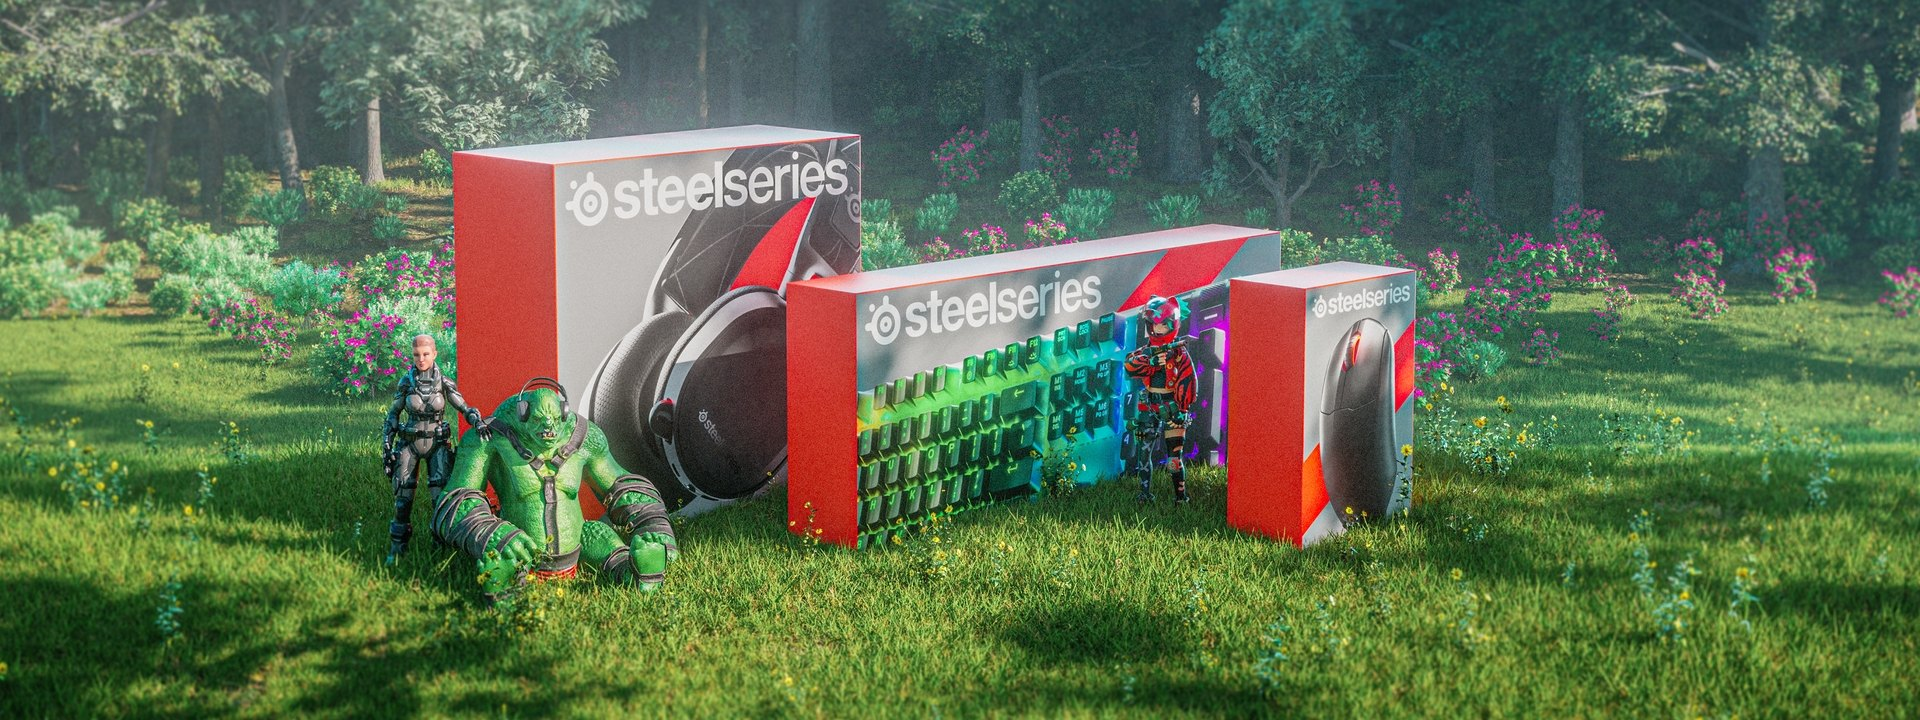 An illustrative render of SteelSeries products in their boxes sitting against a lush forest landscape alongside Lars and other gaming characters.